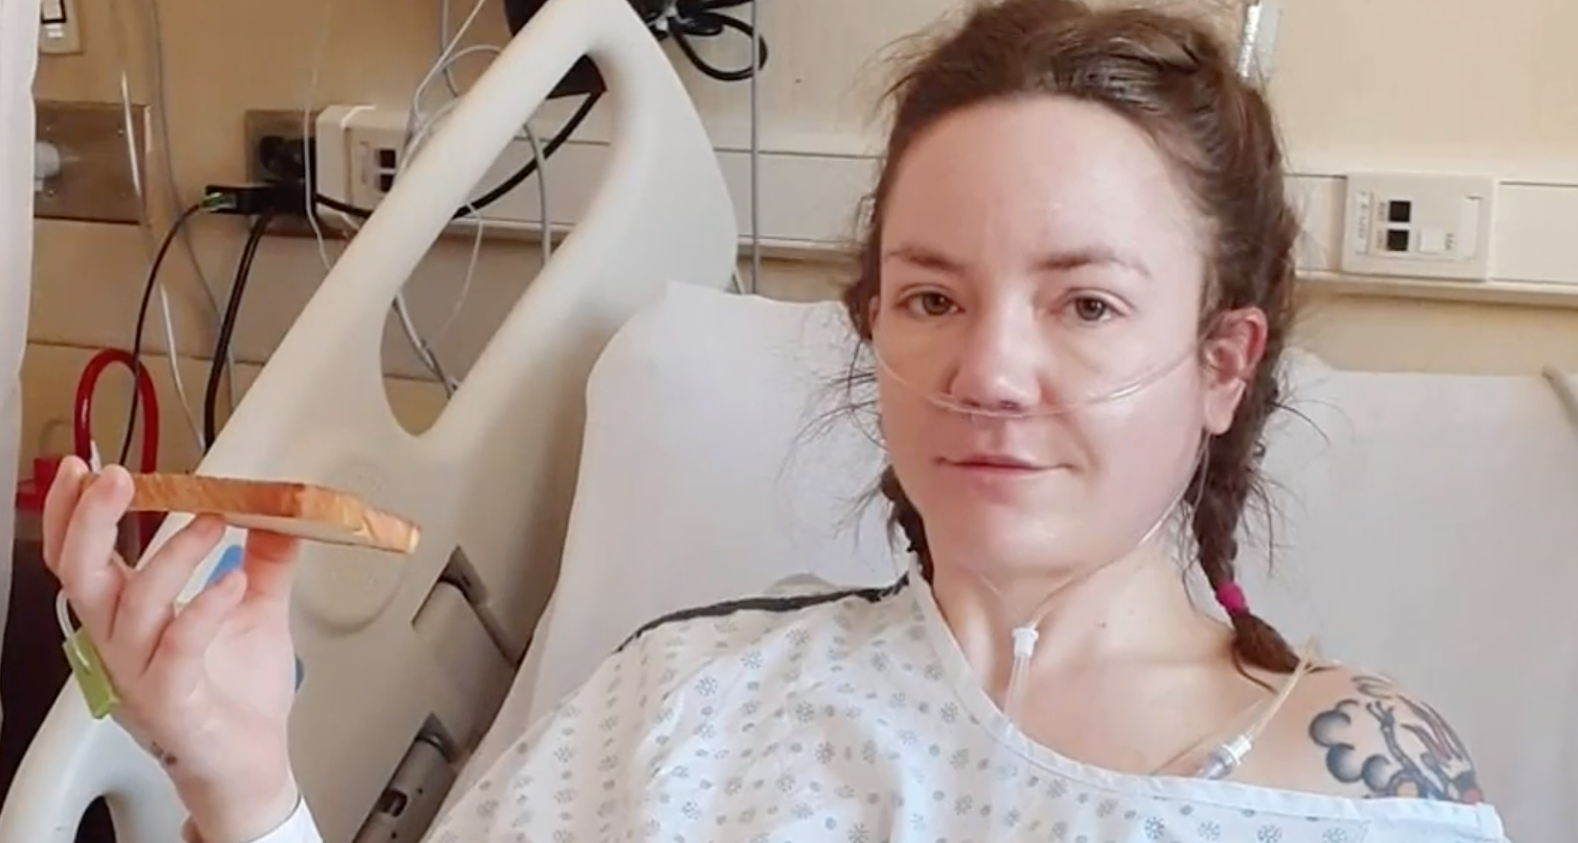 Astonishing twist as woman 'ready to die' finds out reason behind her tumour